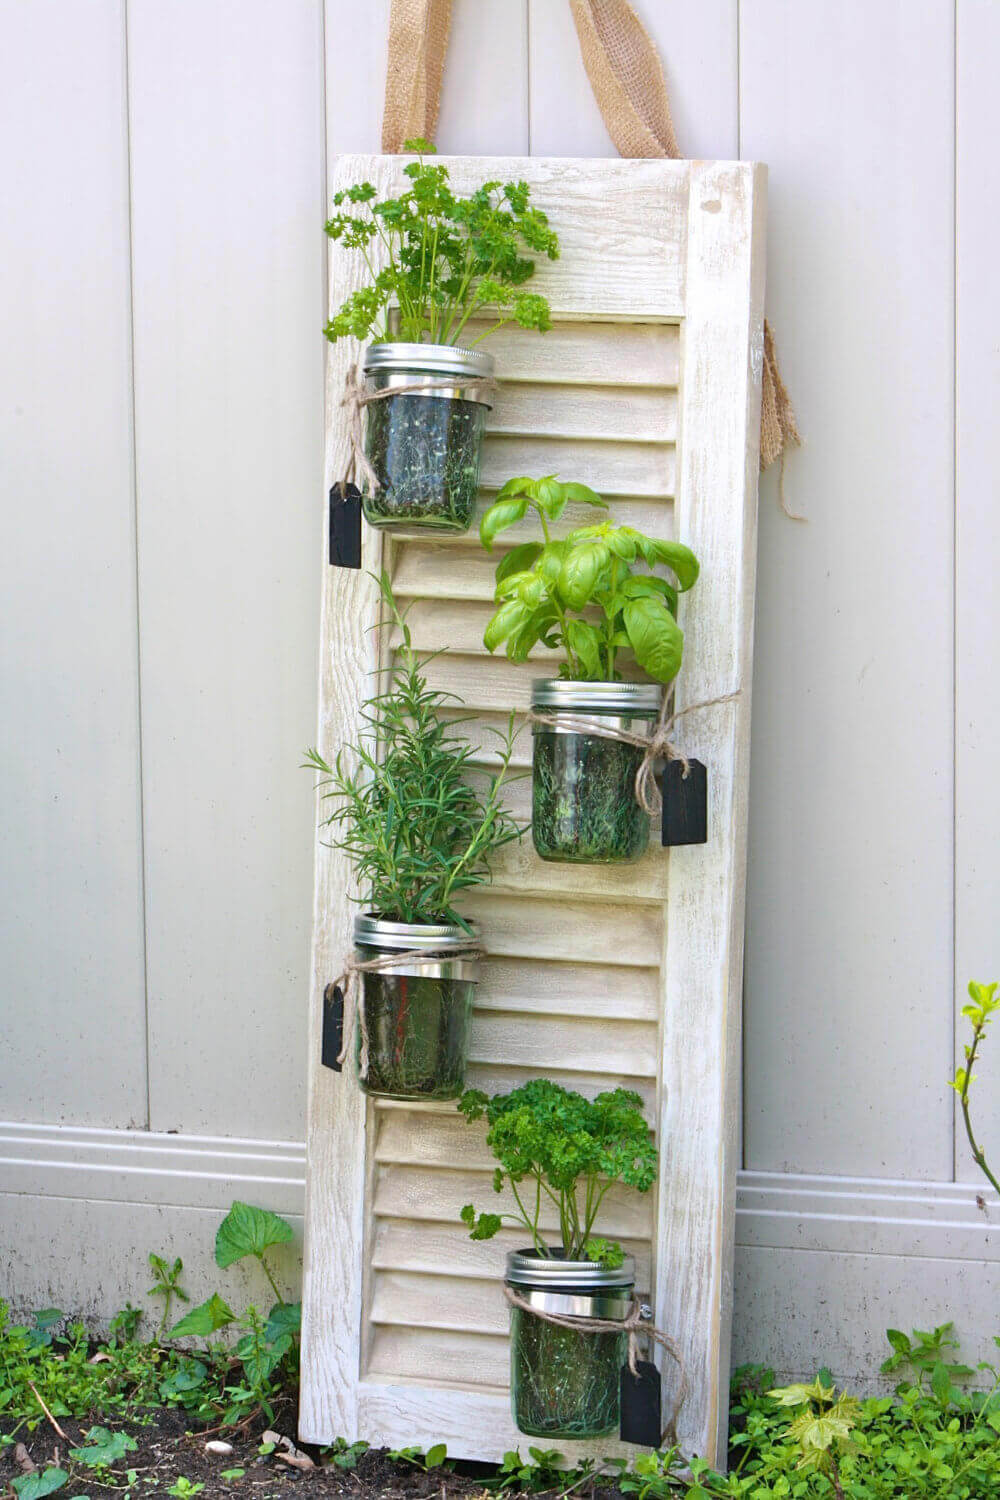 Handy Hanging Herb Garden on a Shutter